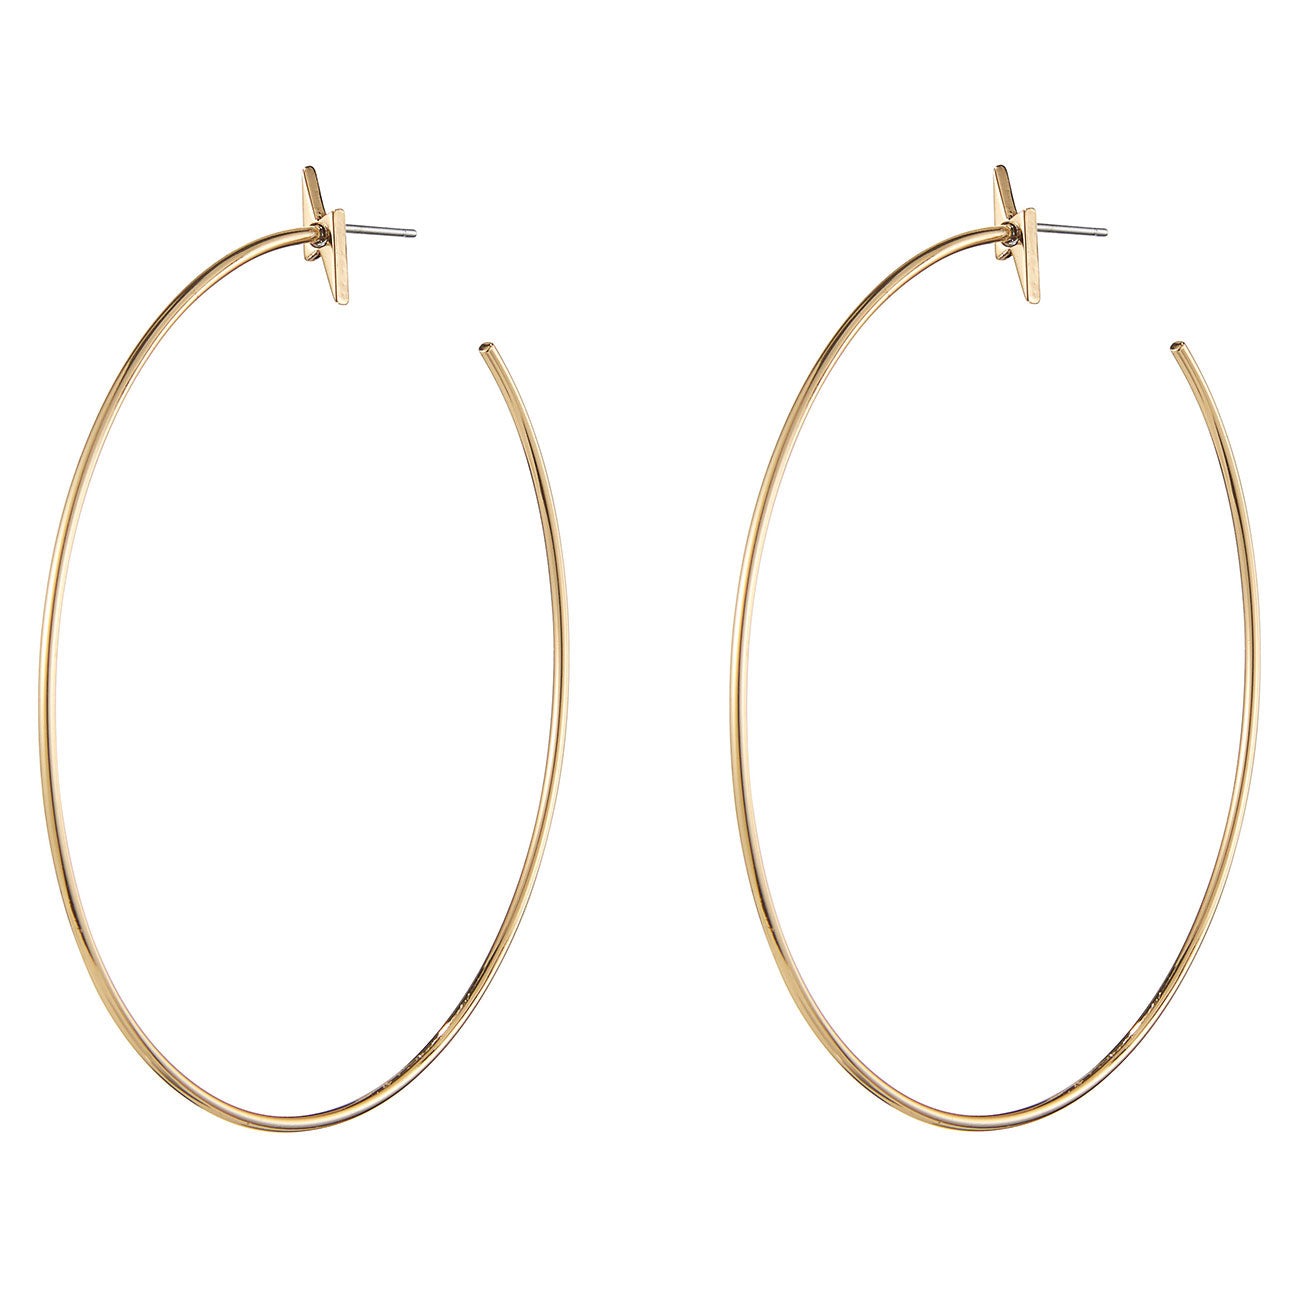 The Thunder Struck Hoops by Jenny Bird in High Polish Gold